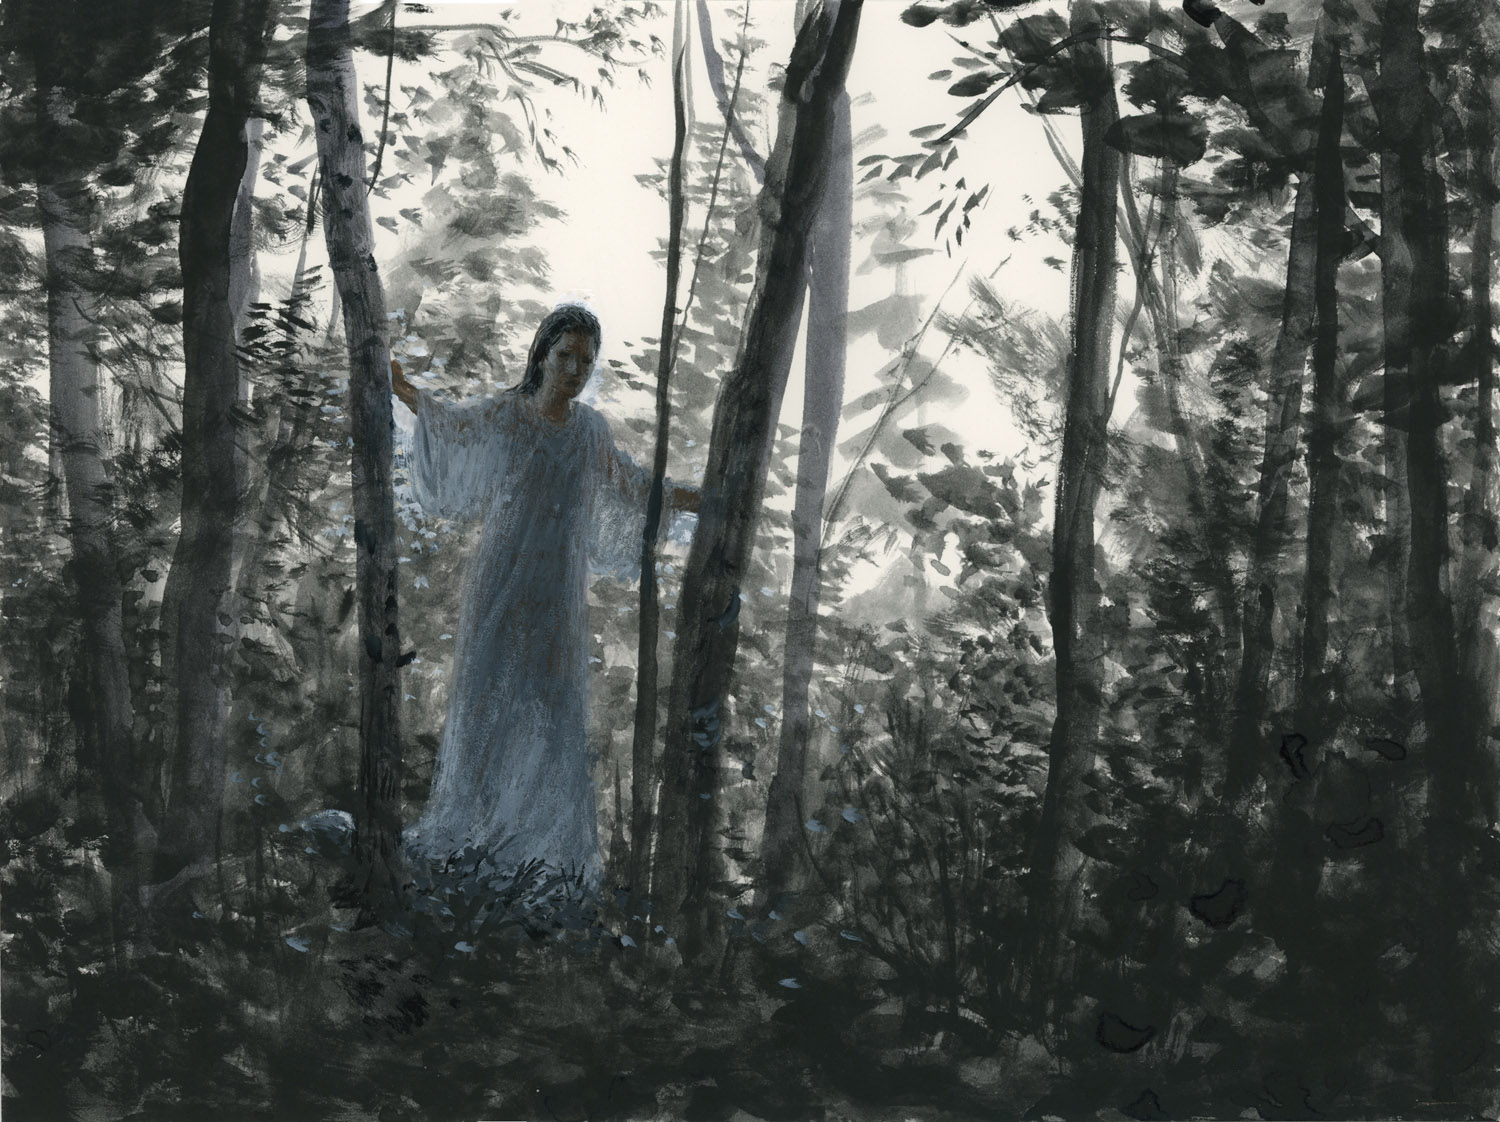 The Forest Study